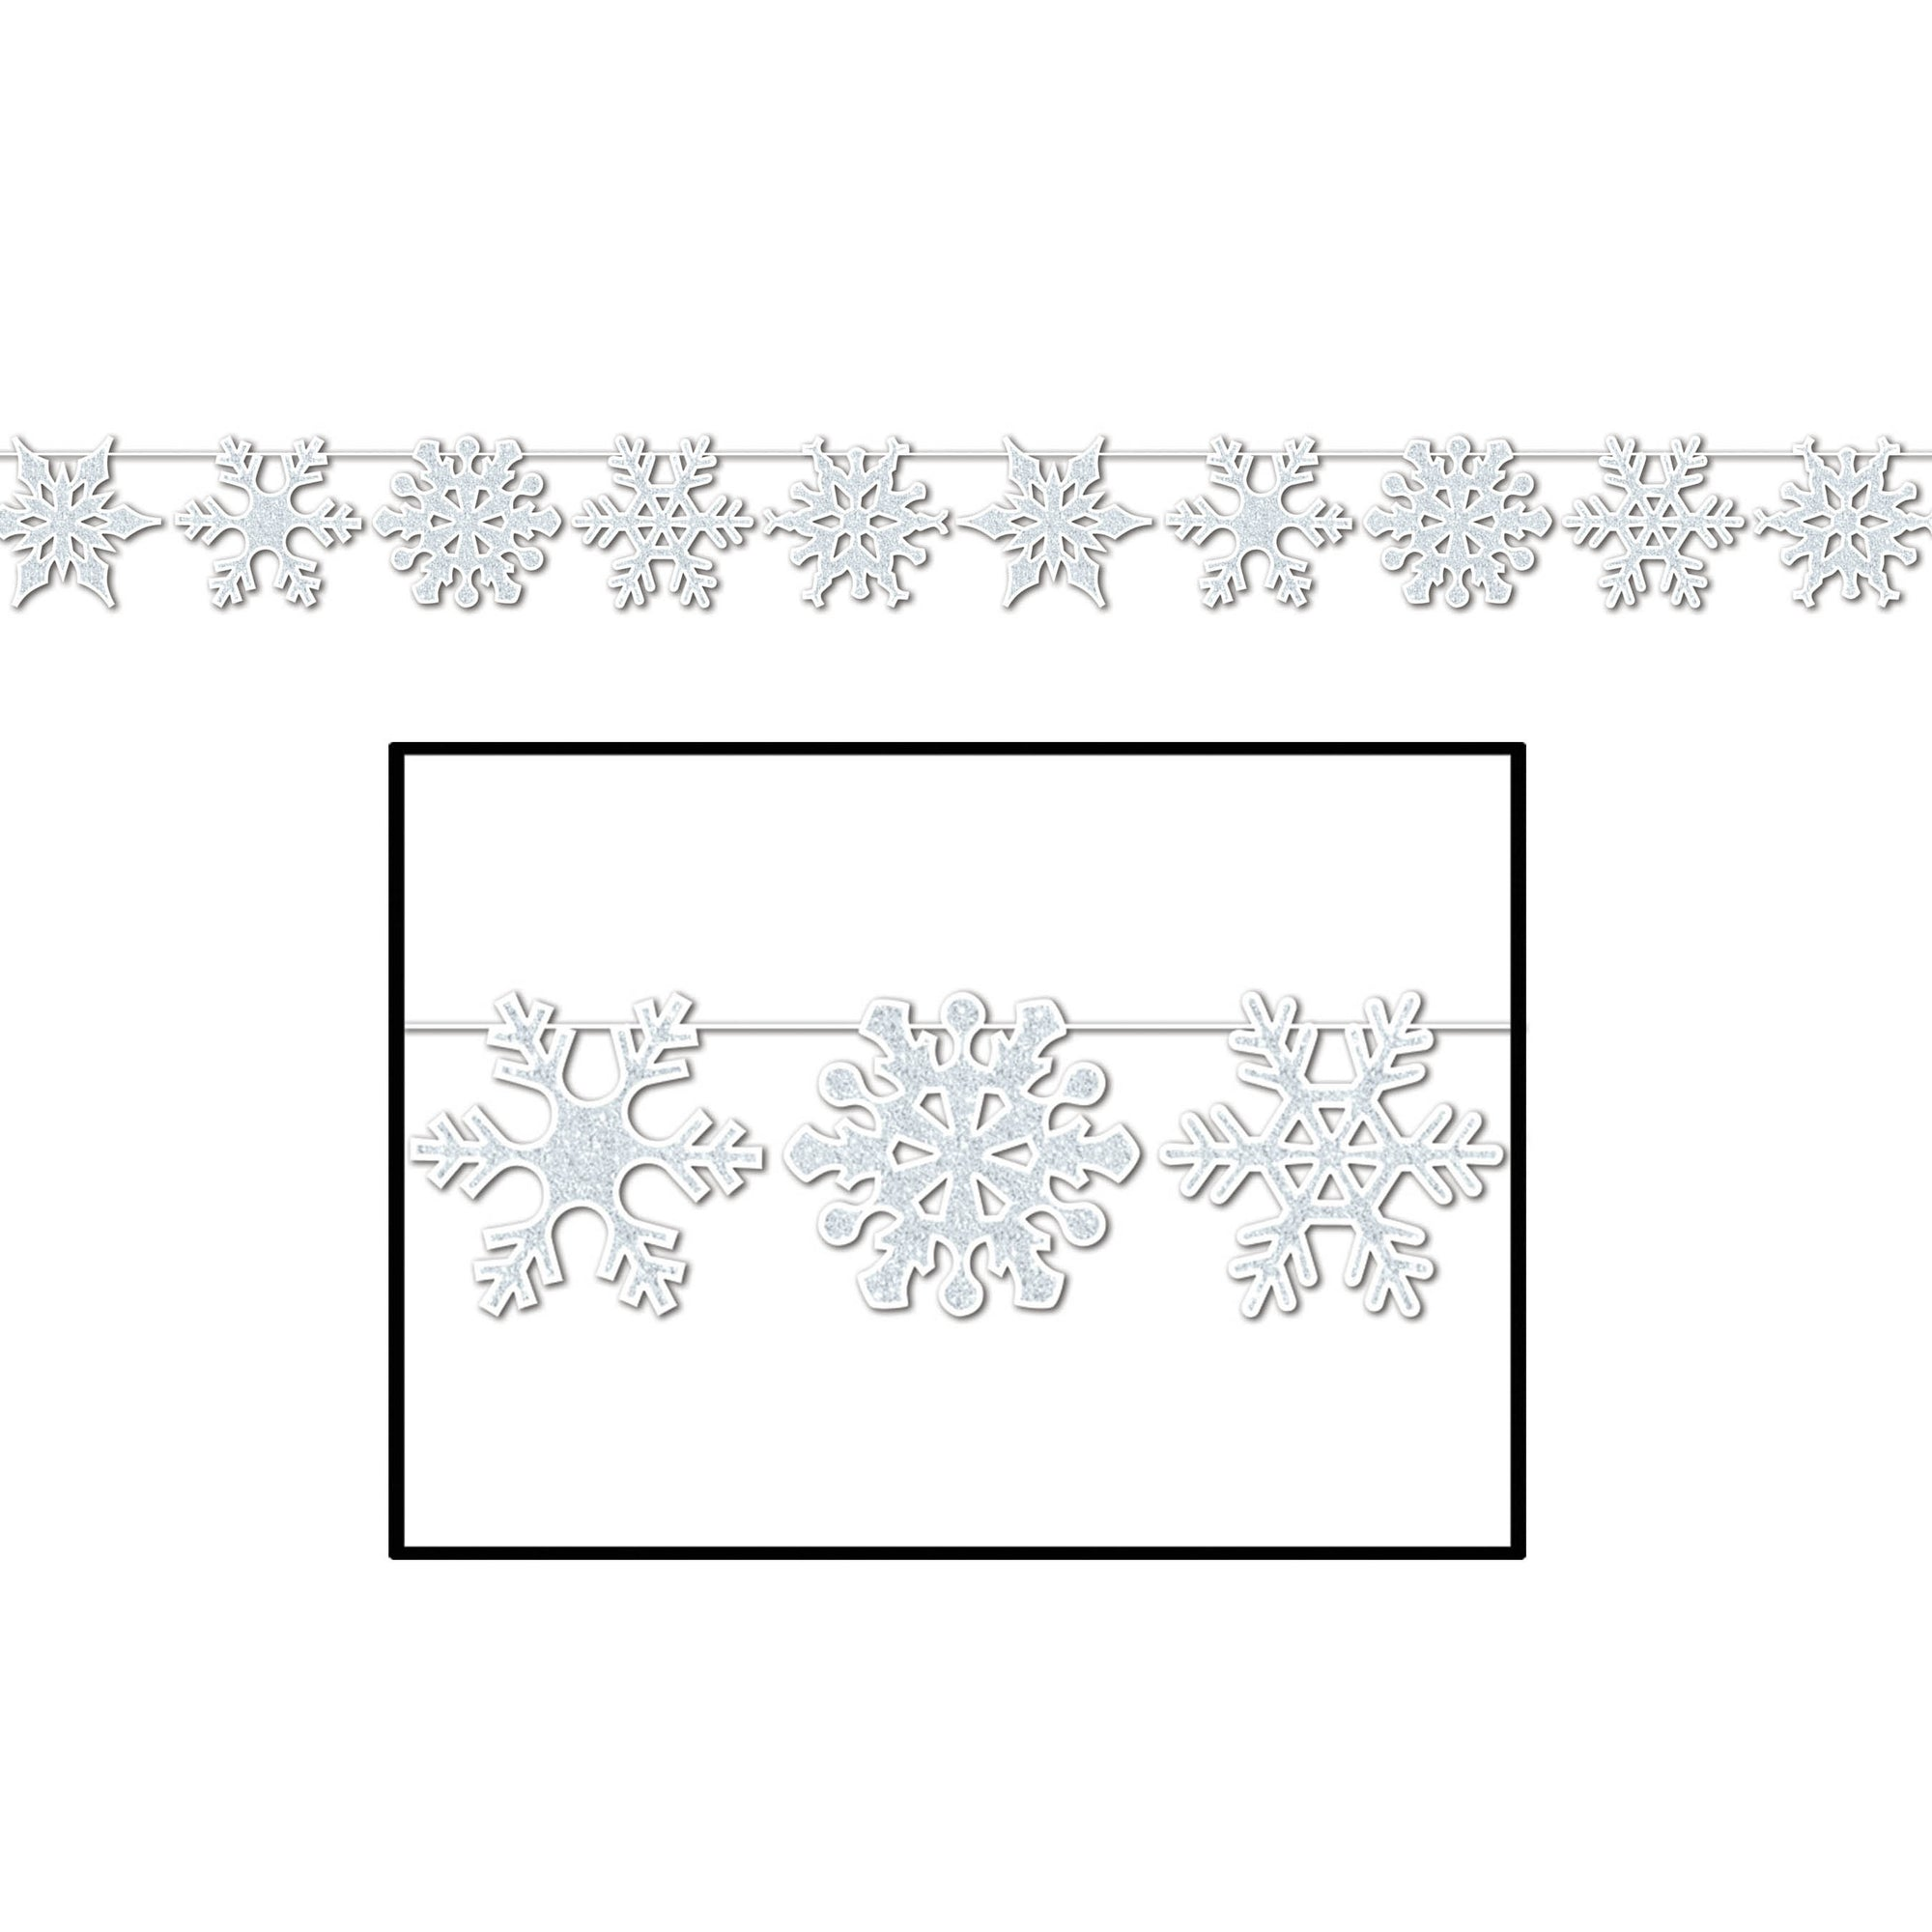 Glittered Snowflake Streamer by Beistle - Winter and Christmas Theme Decorations